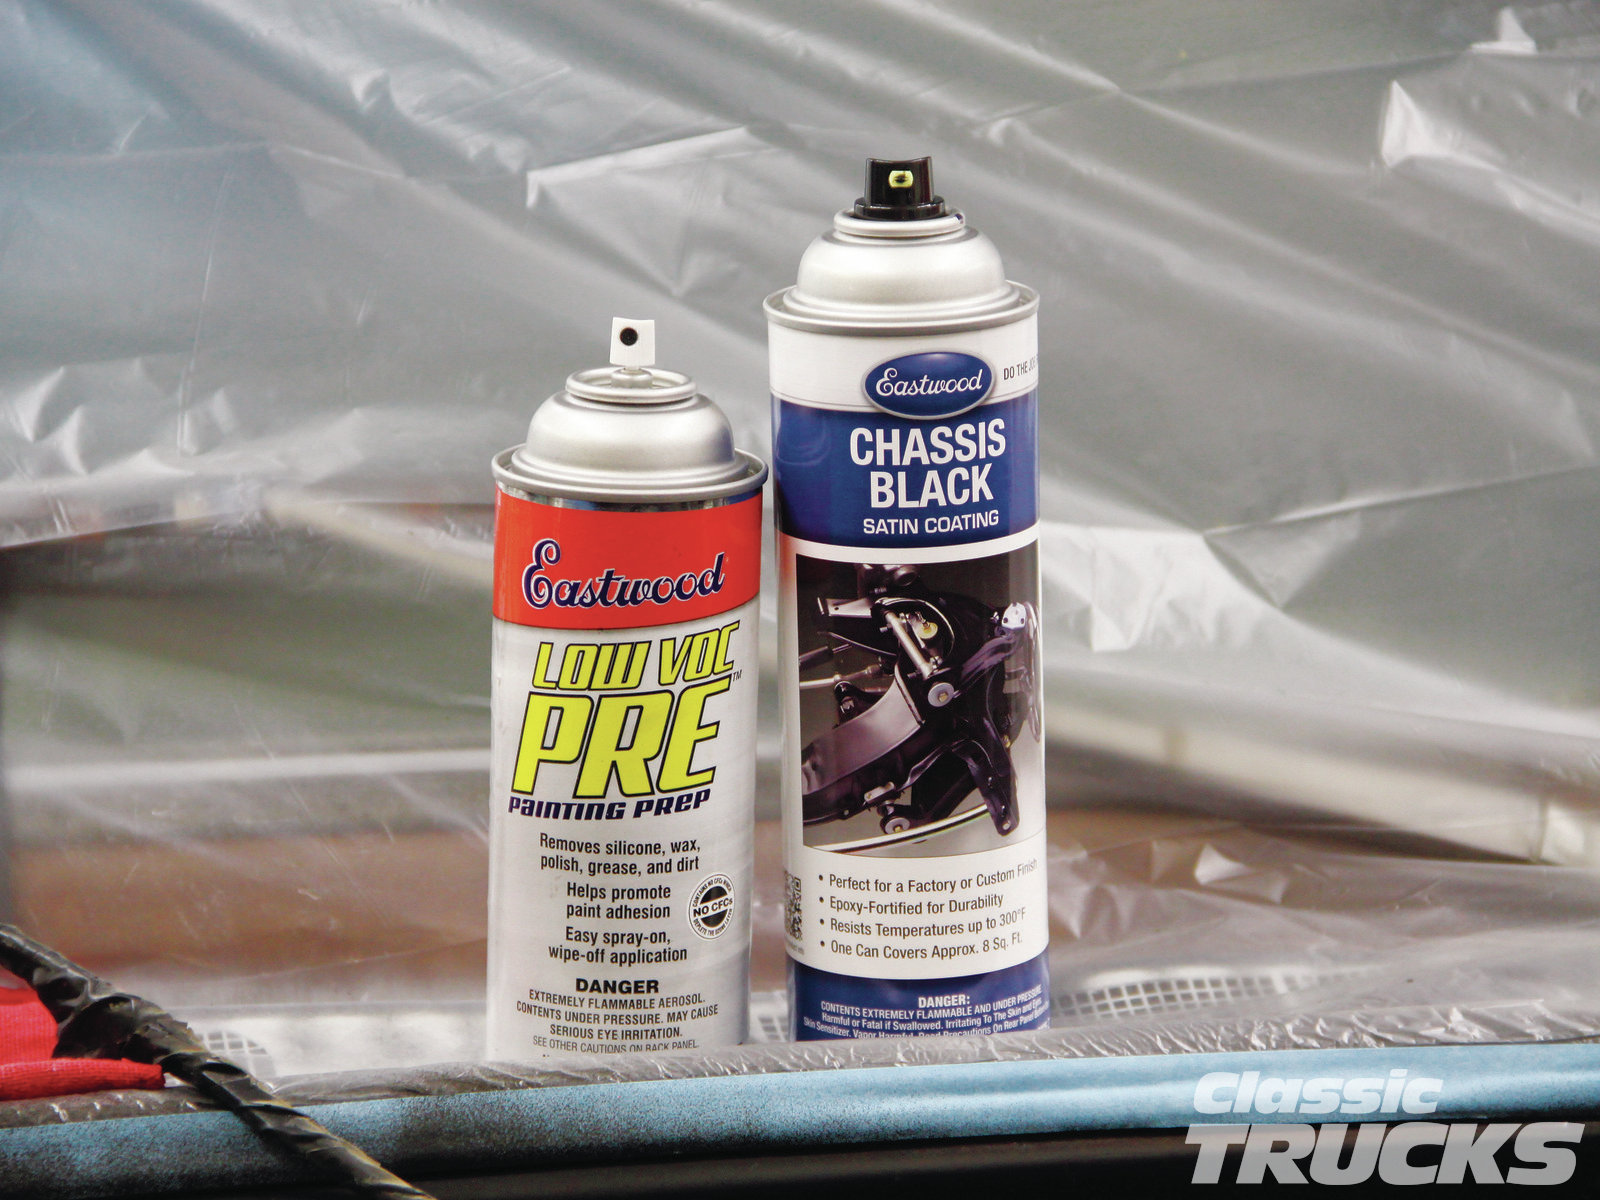 I like to wipe the surface before any paint is applied to the engine bay. Using the Eastwood Low VOC Pre Painting Prep spray to remove any silicone, wax, polish, grease, and dirt. Simply spray it on the surface and wipe dry with a clean rag.